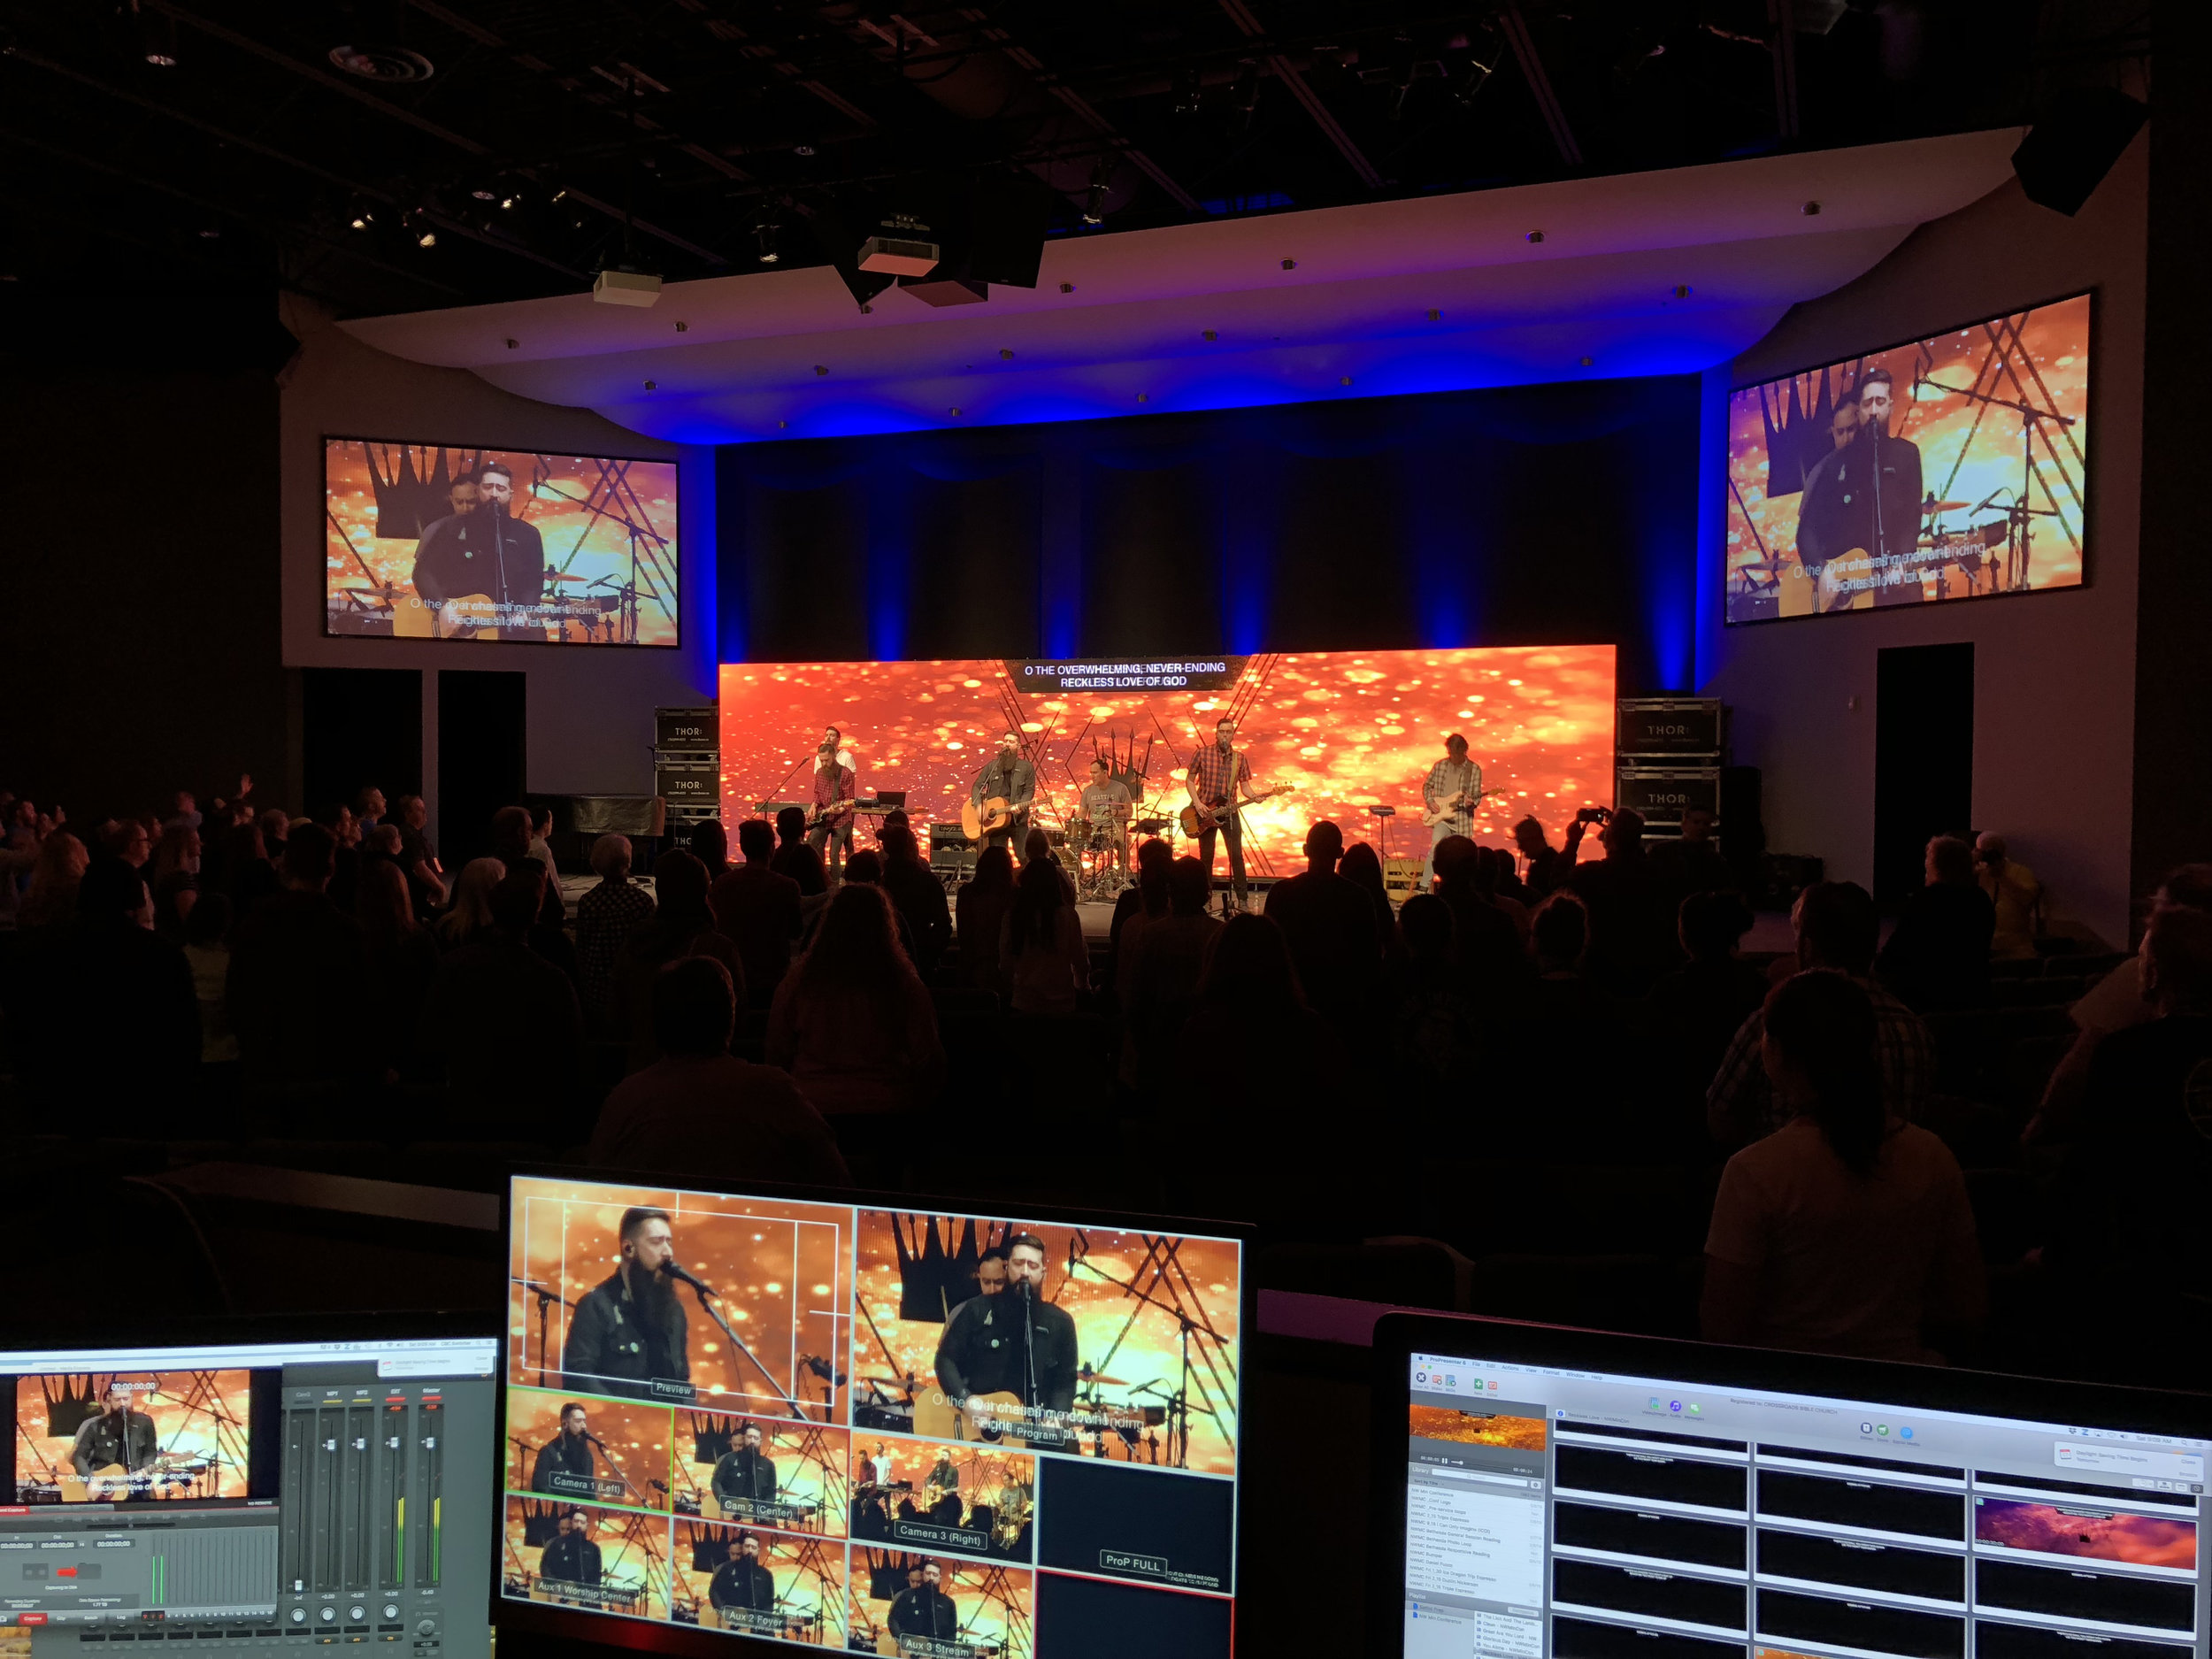 creating environments & experiences - through audio, video, lighting, media and production.